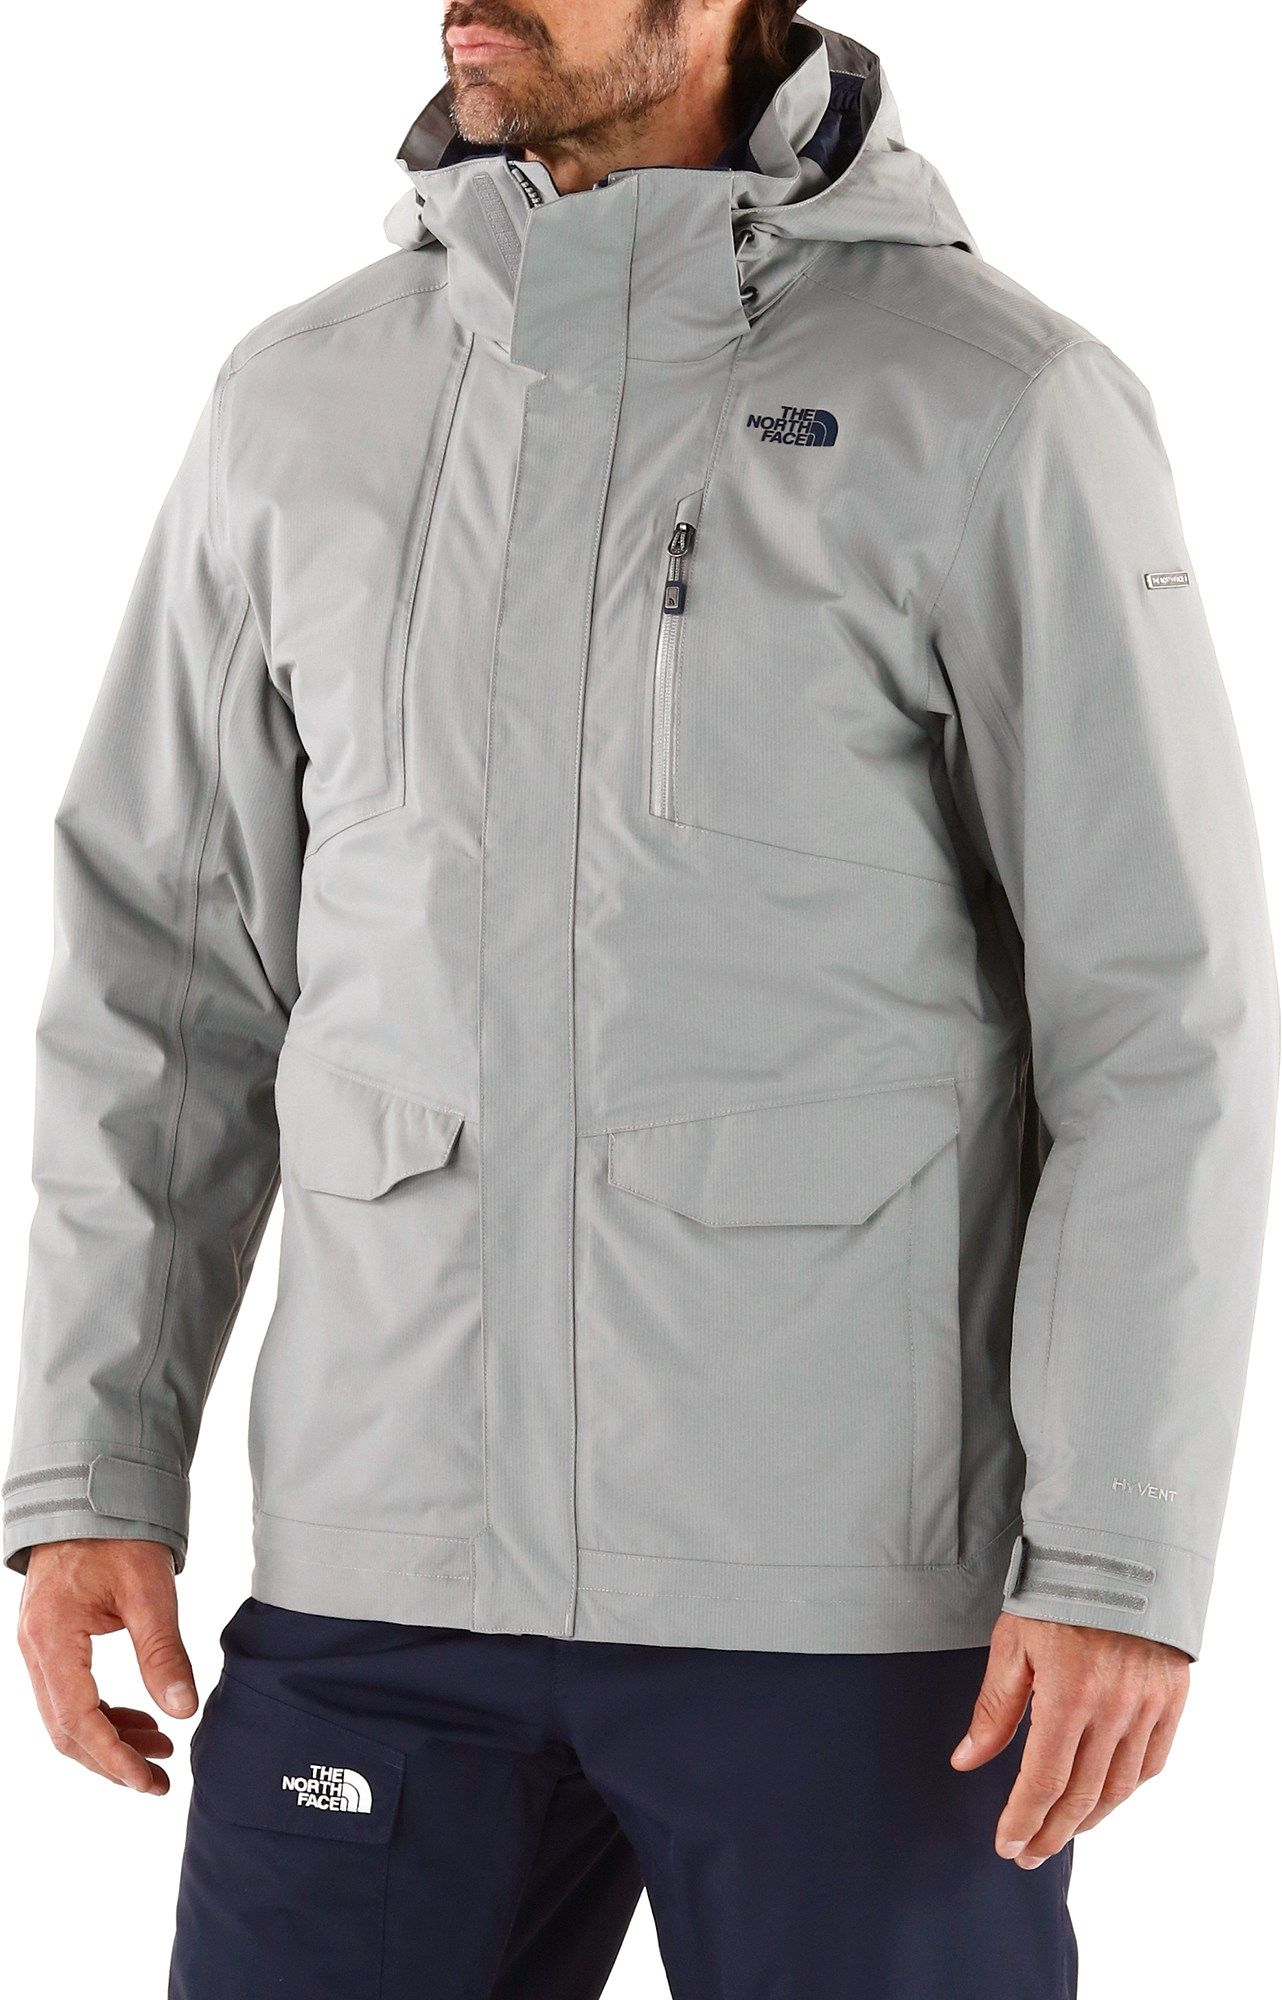 435af38f8 denmark the north face mens down triclimate parka jacket uk b1825 7e7a5